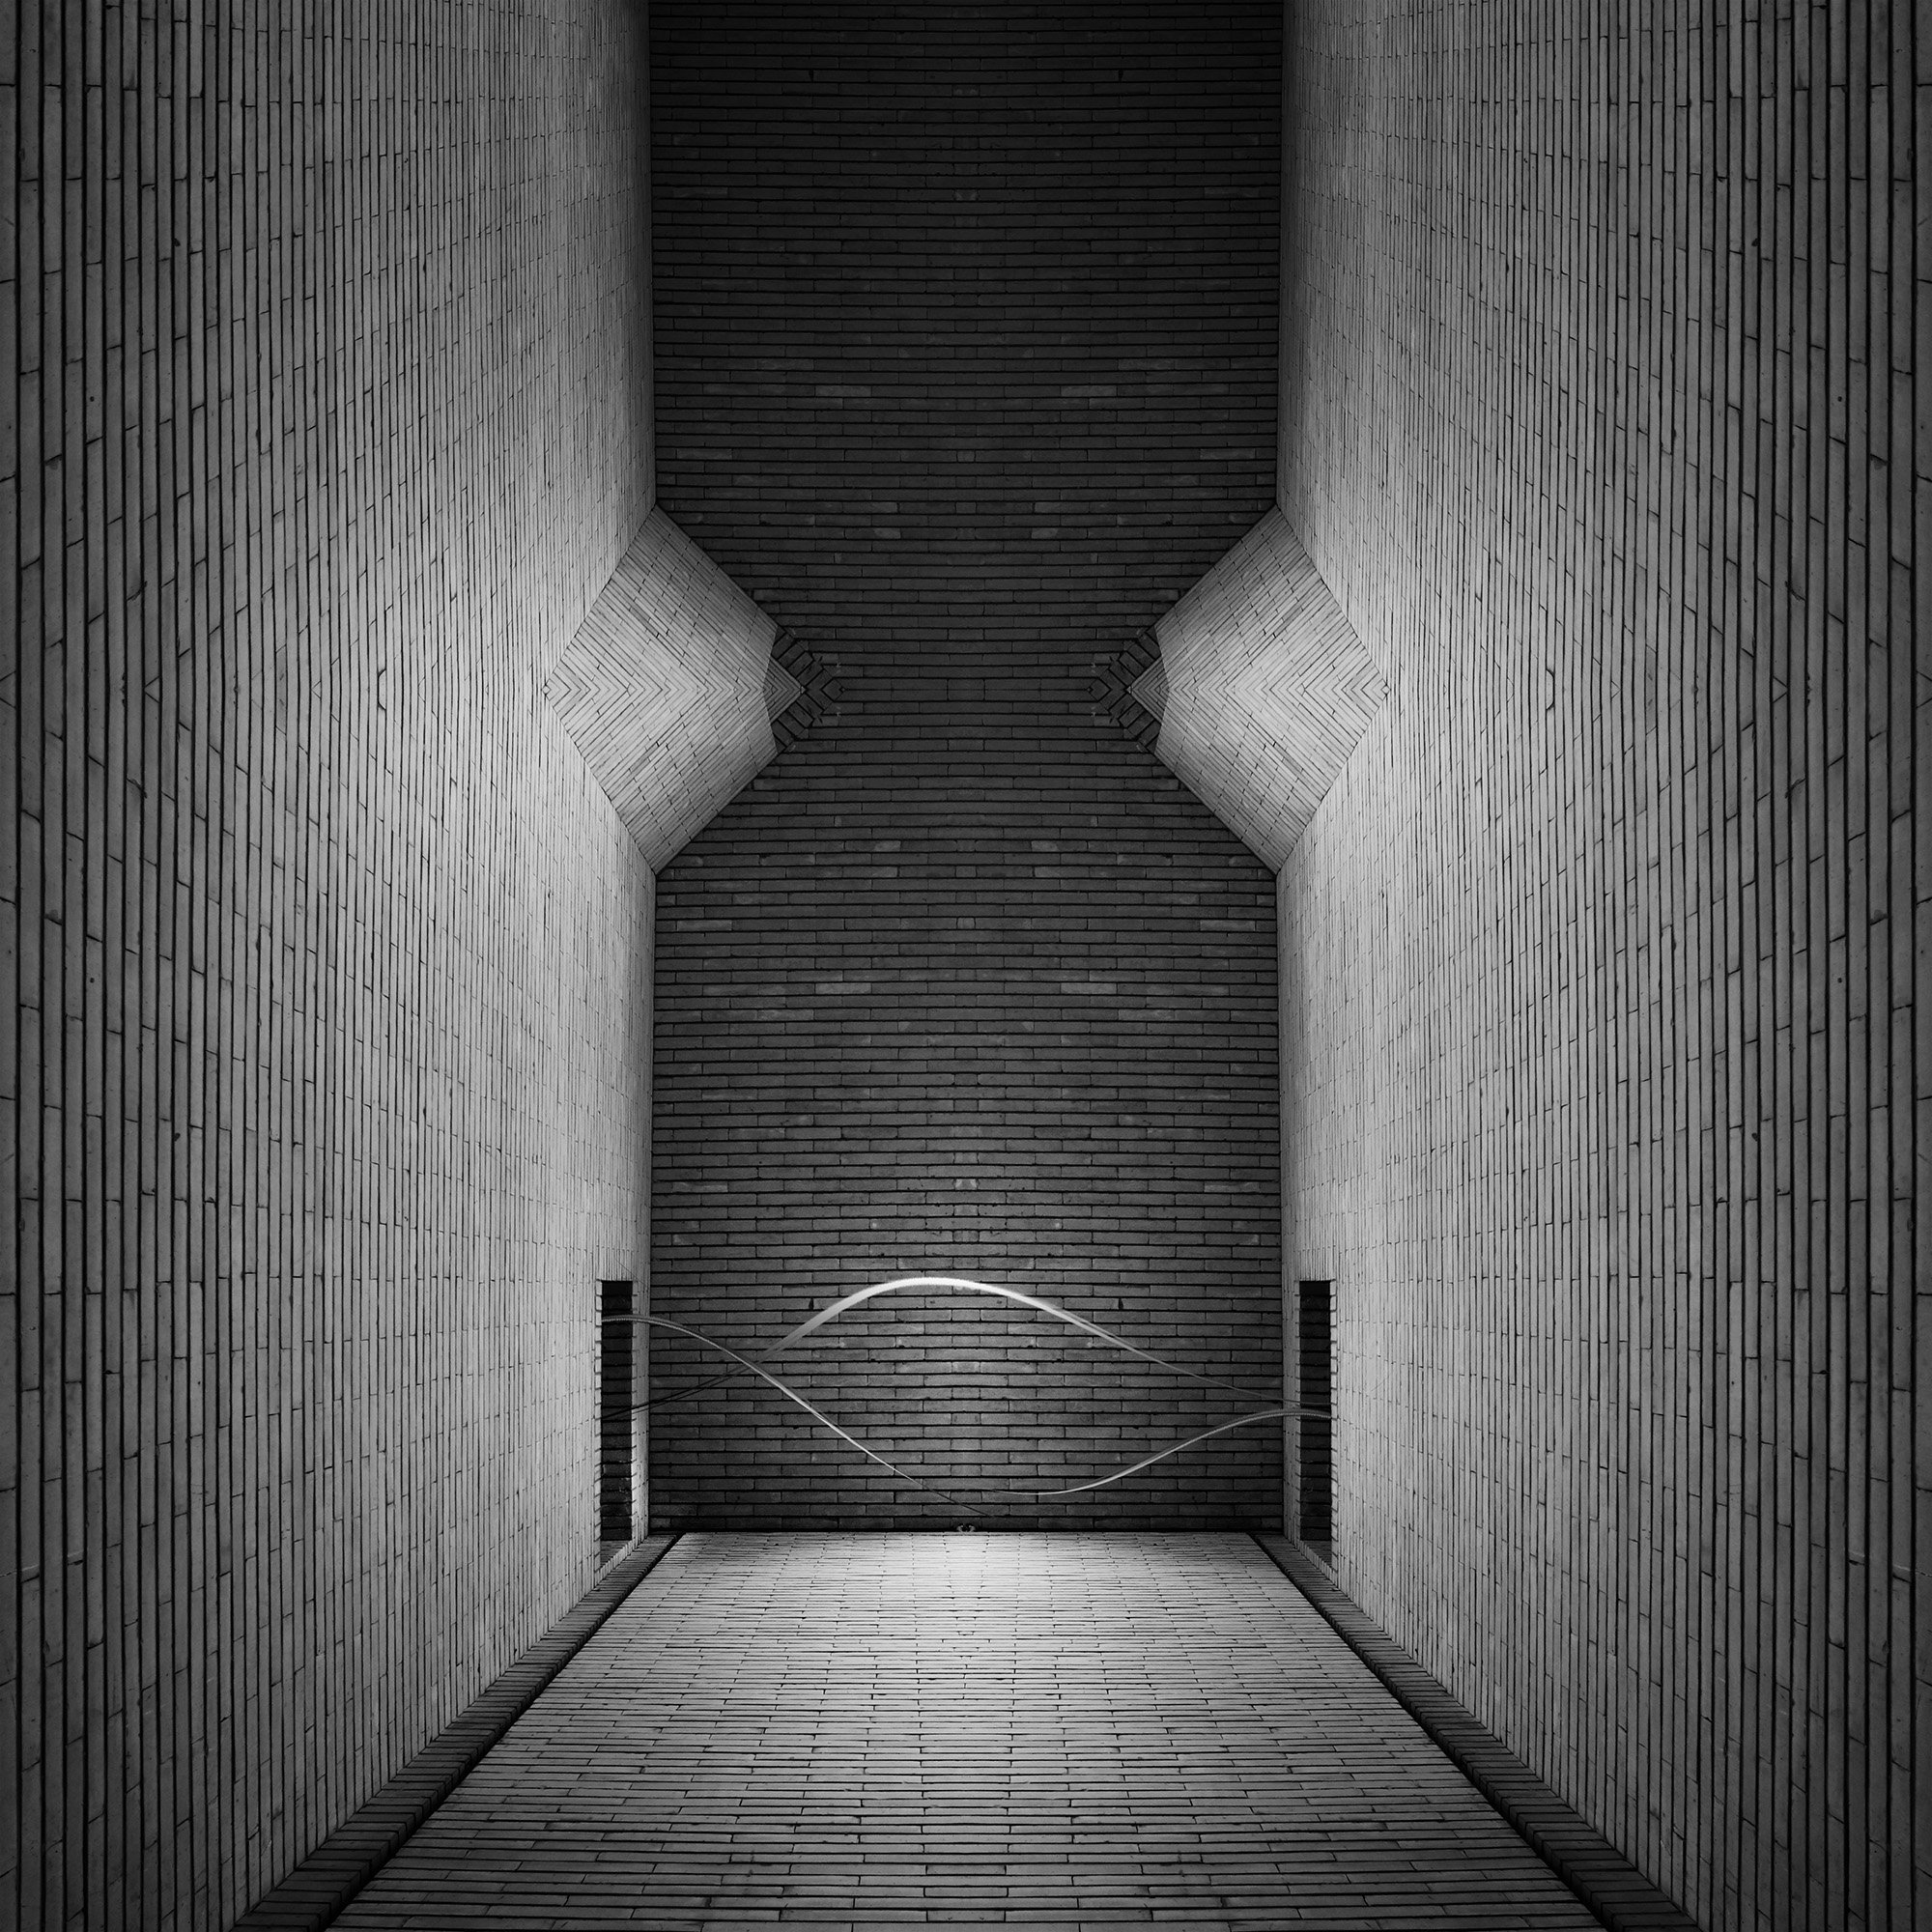 minimal, lines, abstrat, shadow, architecture, human, holography, conceptual, creative,, Milad Safabakhsh